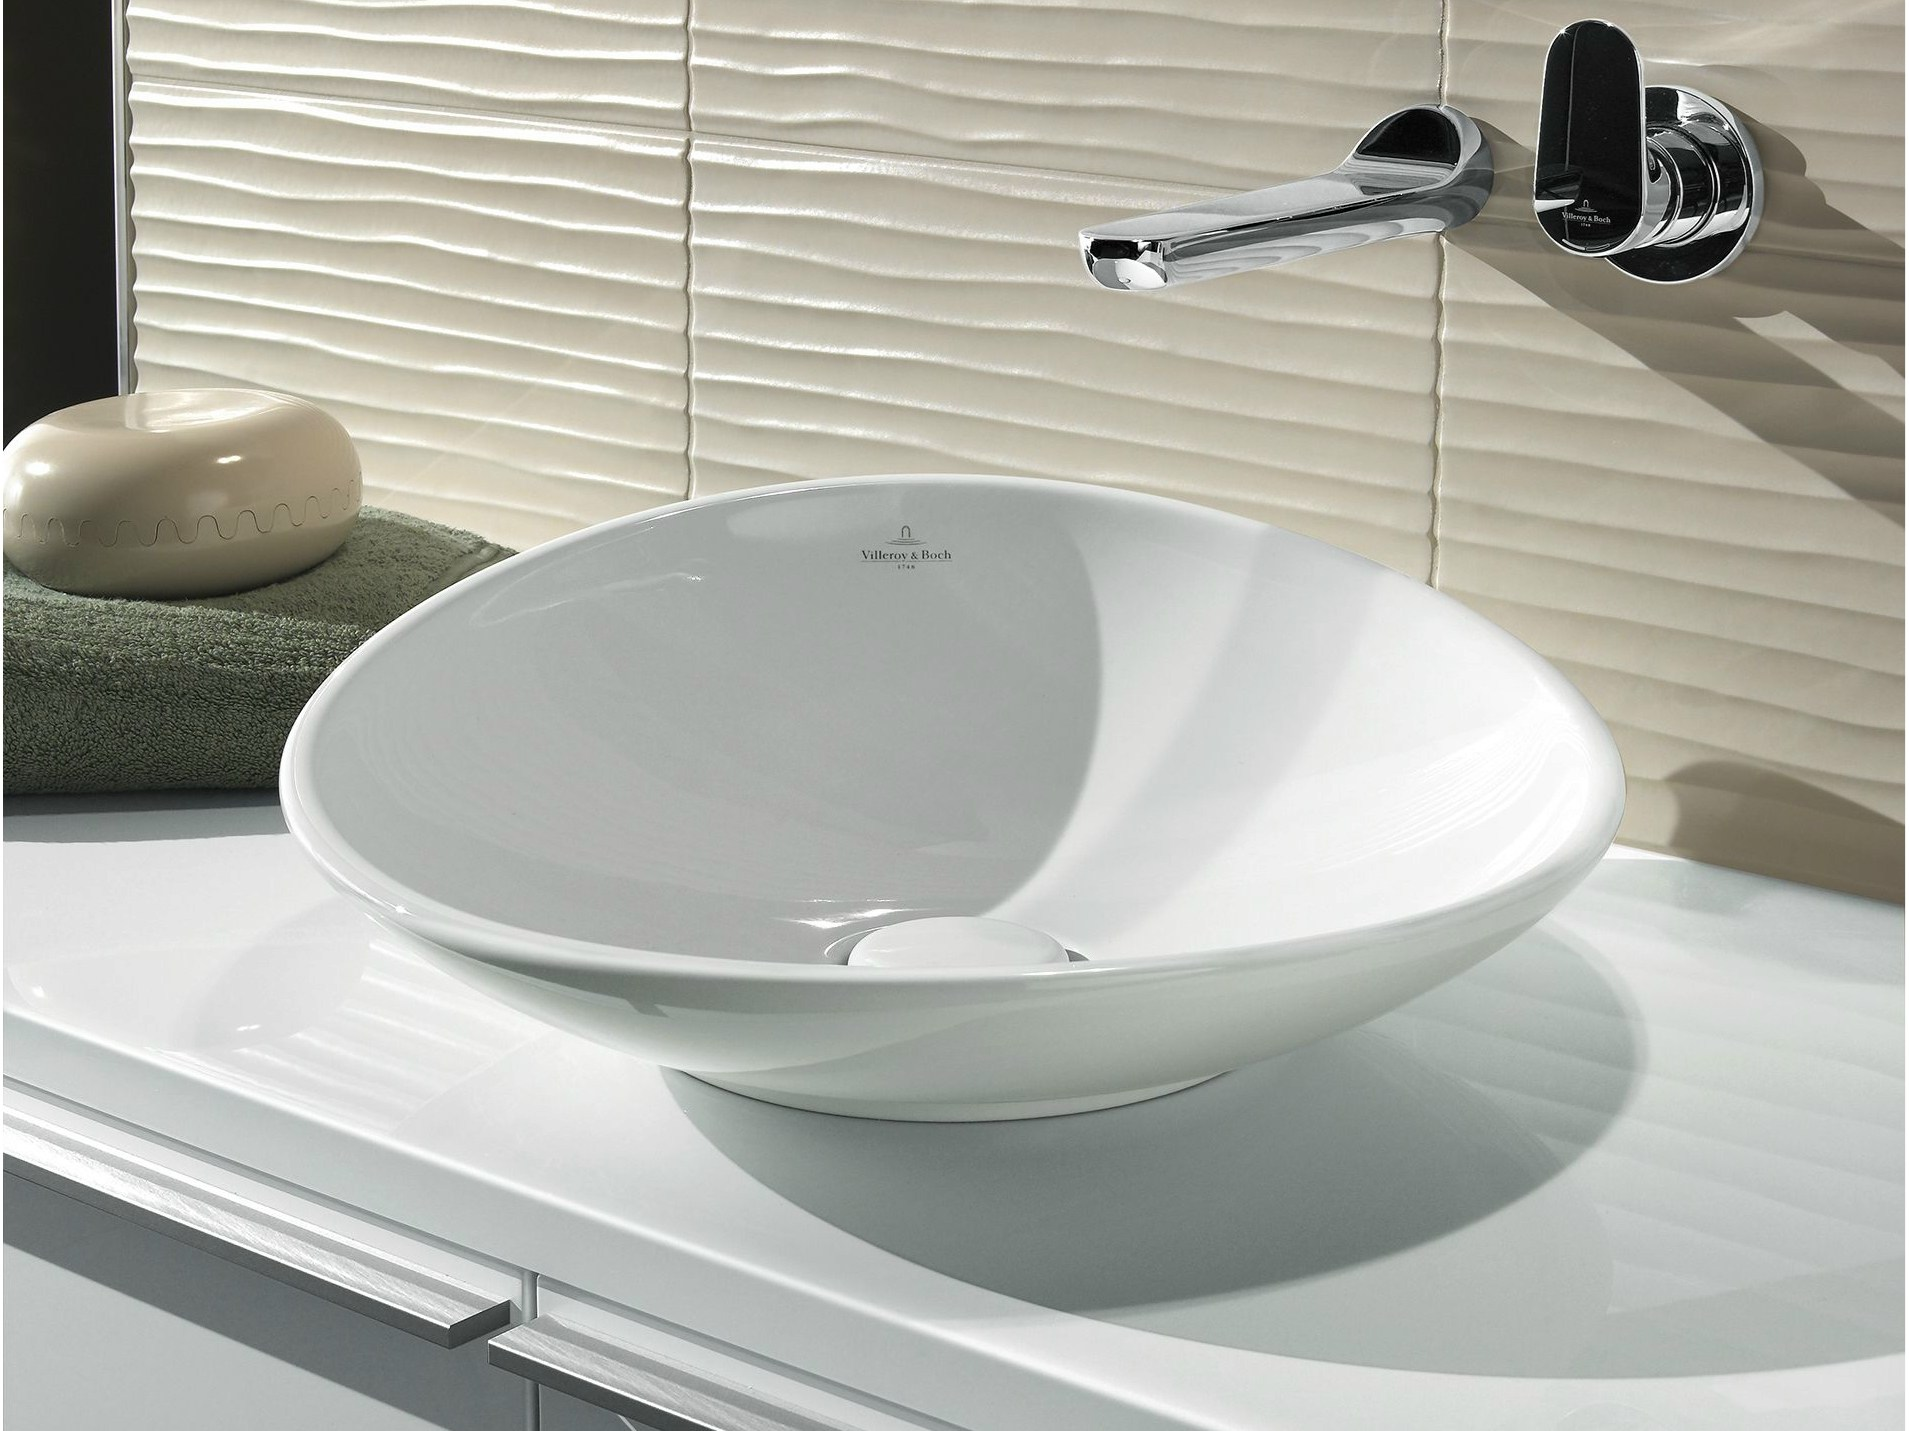 Villeroy and boch bathroom sink -  Villeroy And Boch Bathroom Sink 19 Download